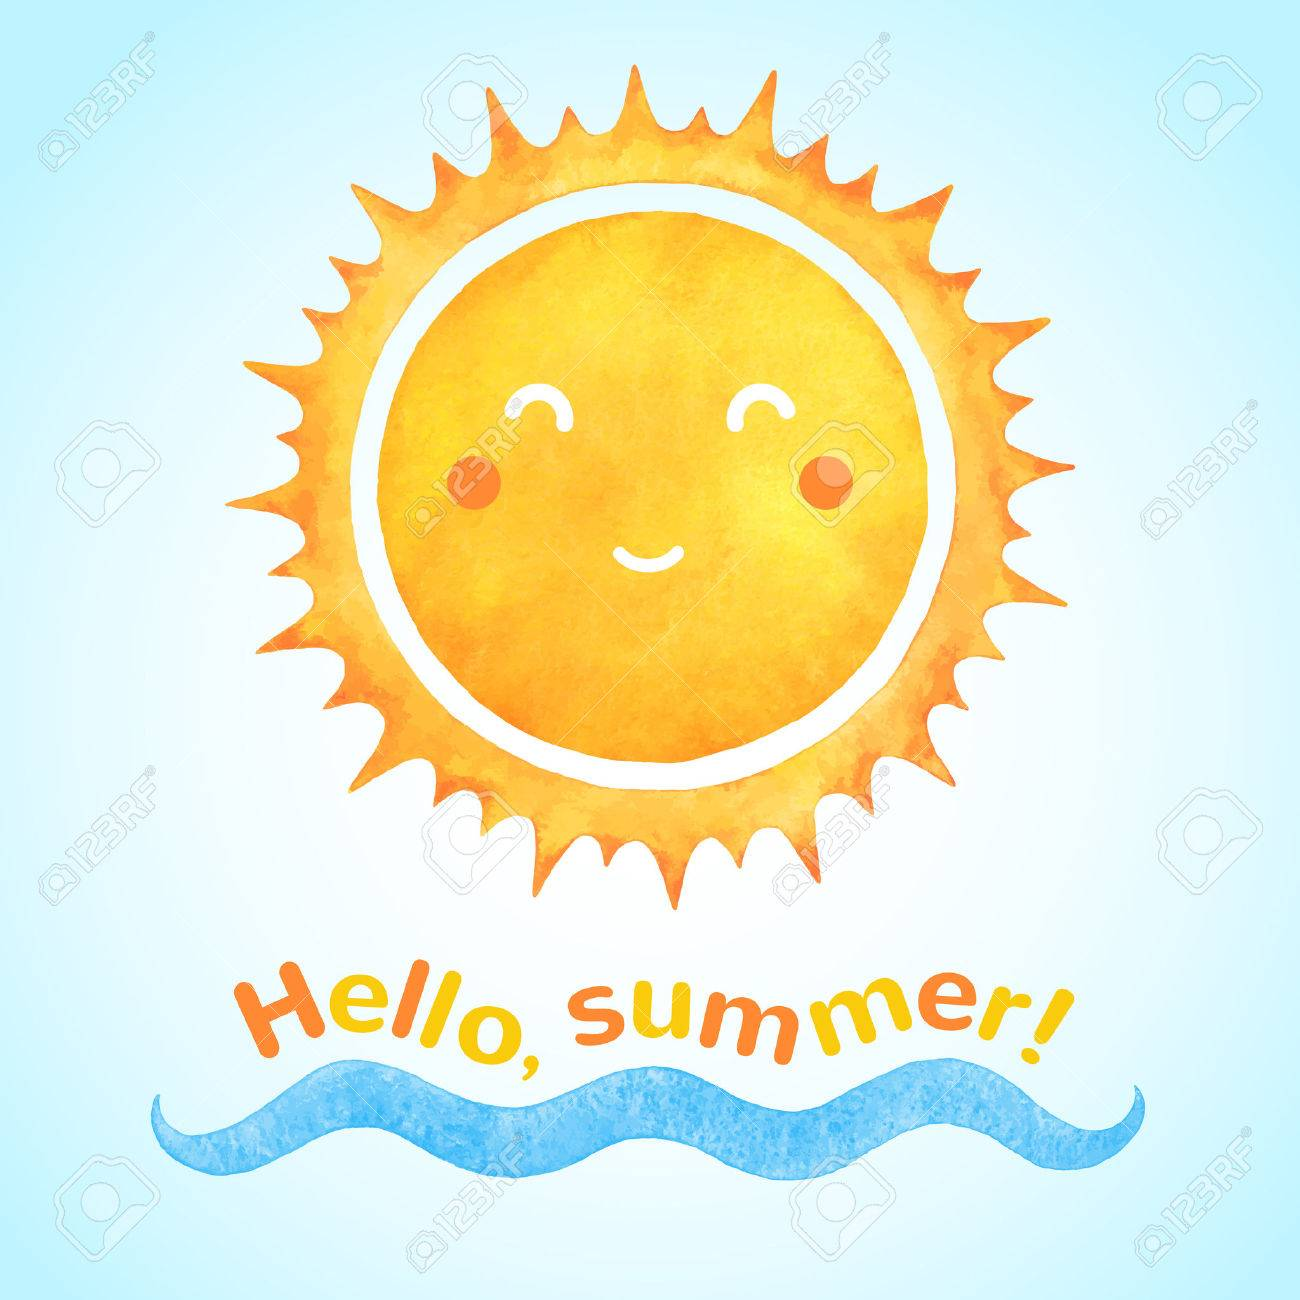 Watercolor Vector Smiling Sun With Cartoon Funny Face And Sea Wave. Hello,  Summer!